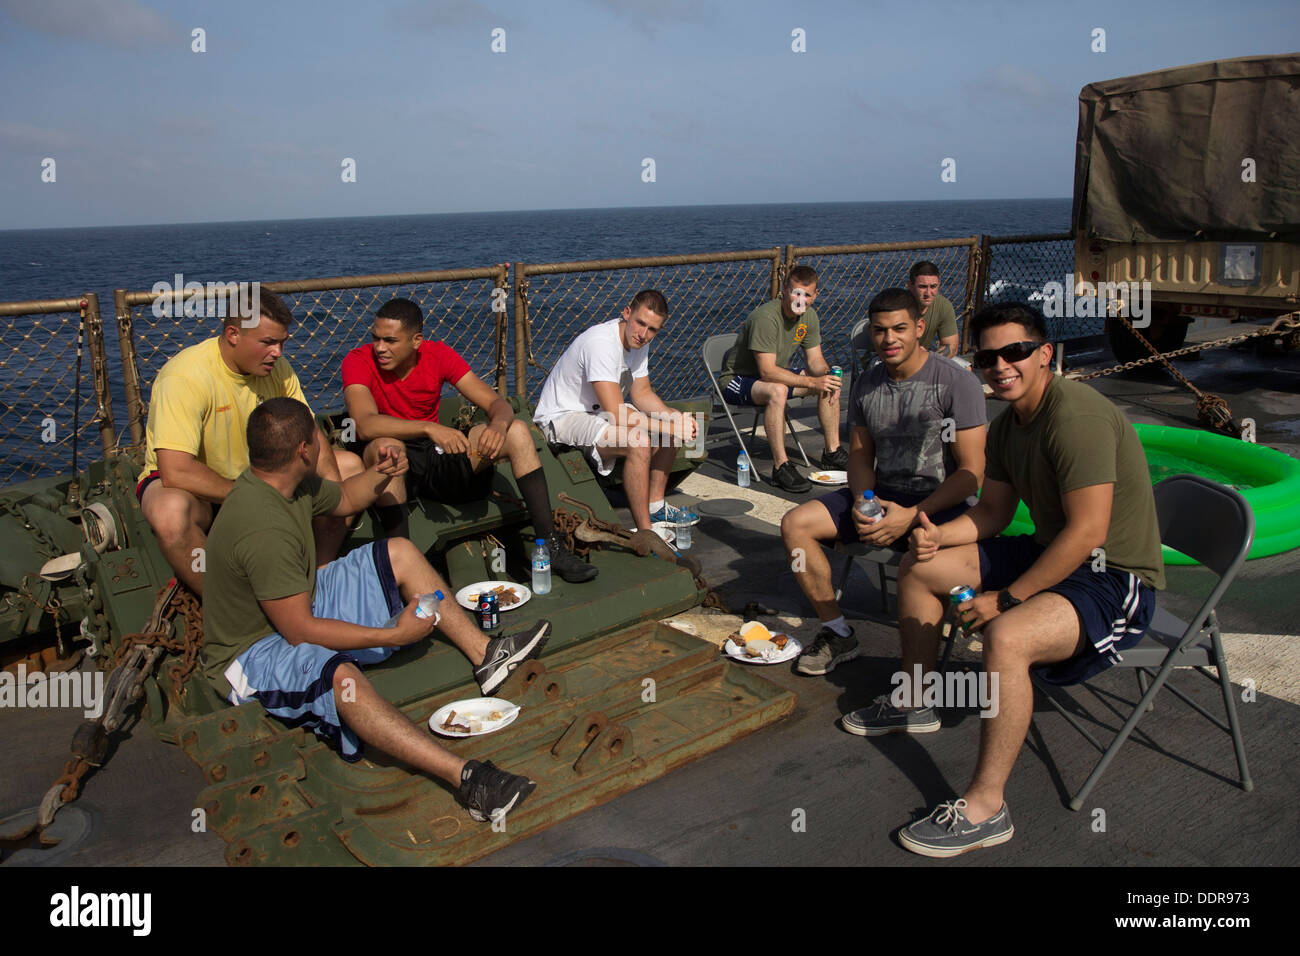 U.S. Marines and Sailors assigned to the 26th Marine Expeditionary Unit (MEU) and USS Carter Hall (LSD 50) relax out of uniform - Stock Image